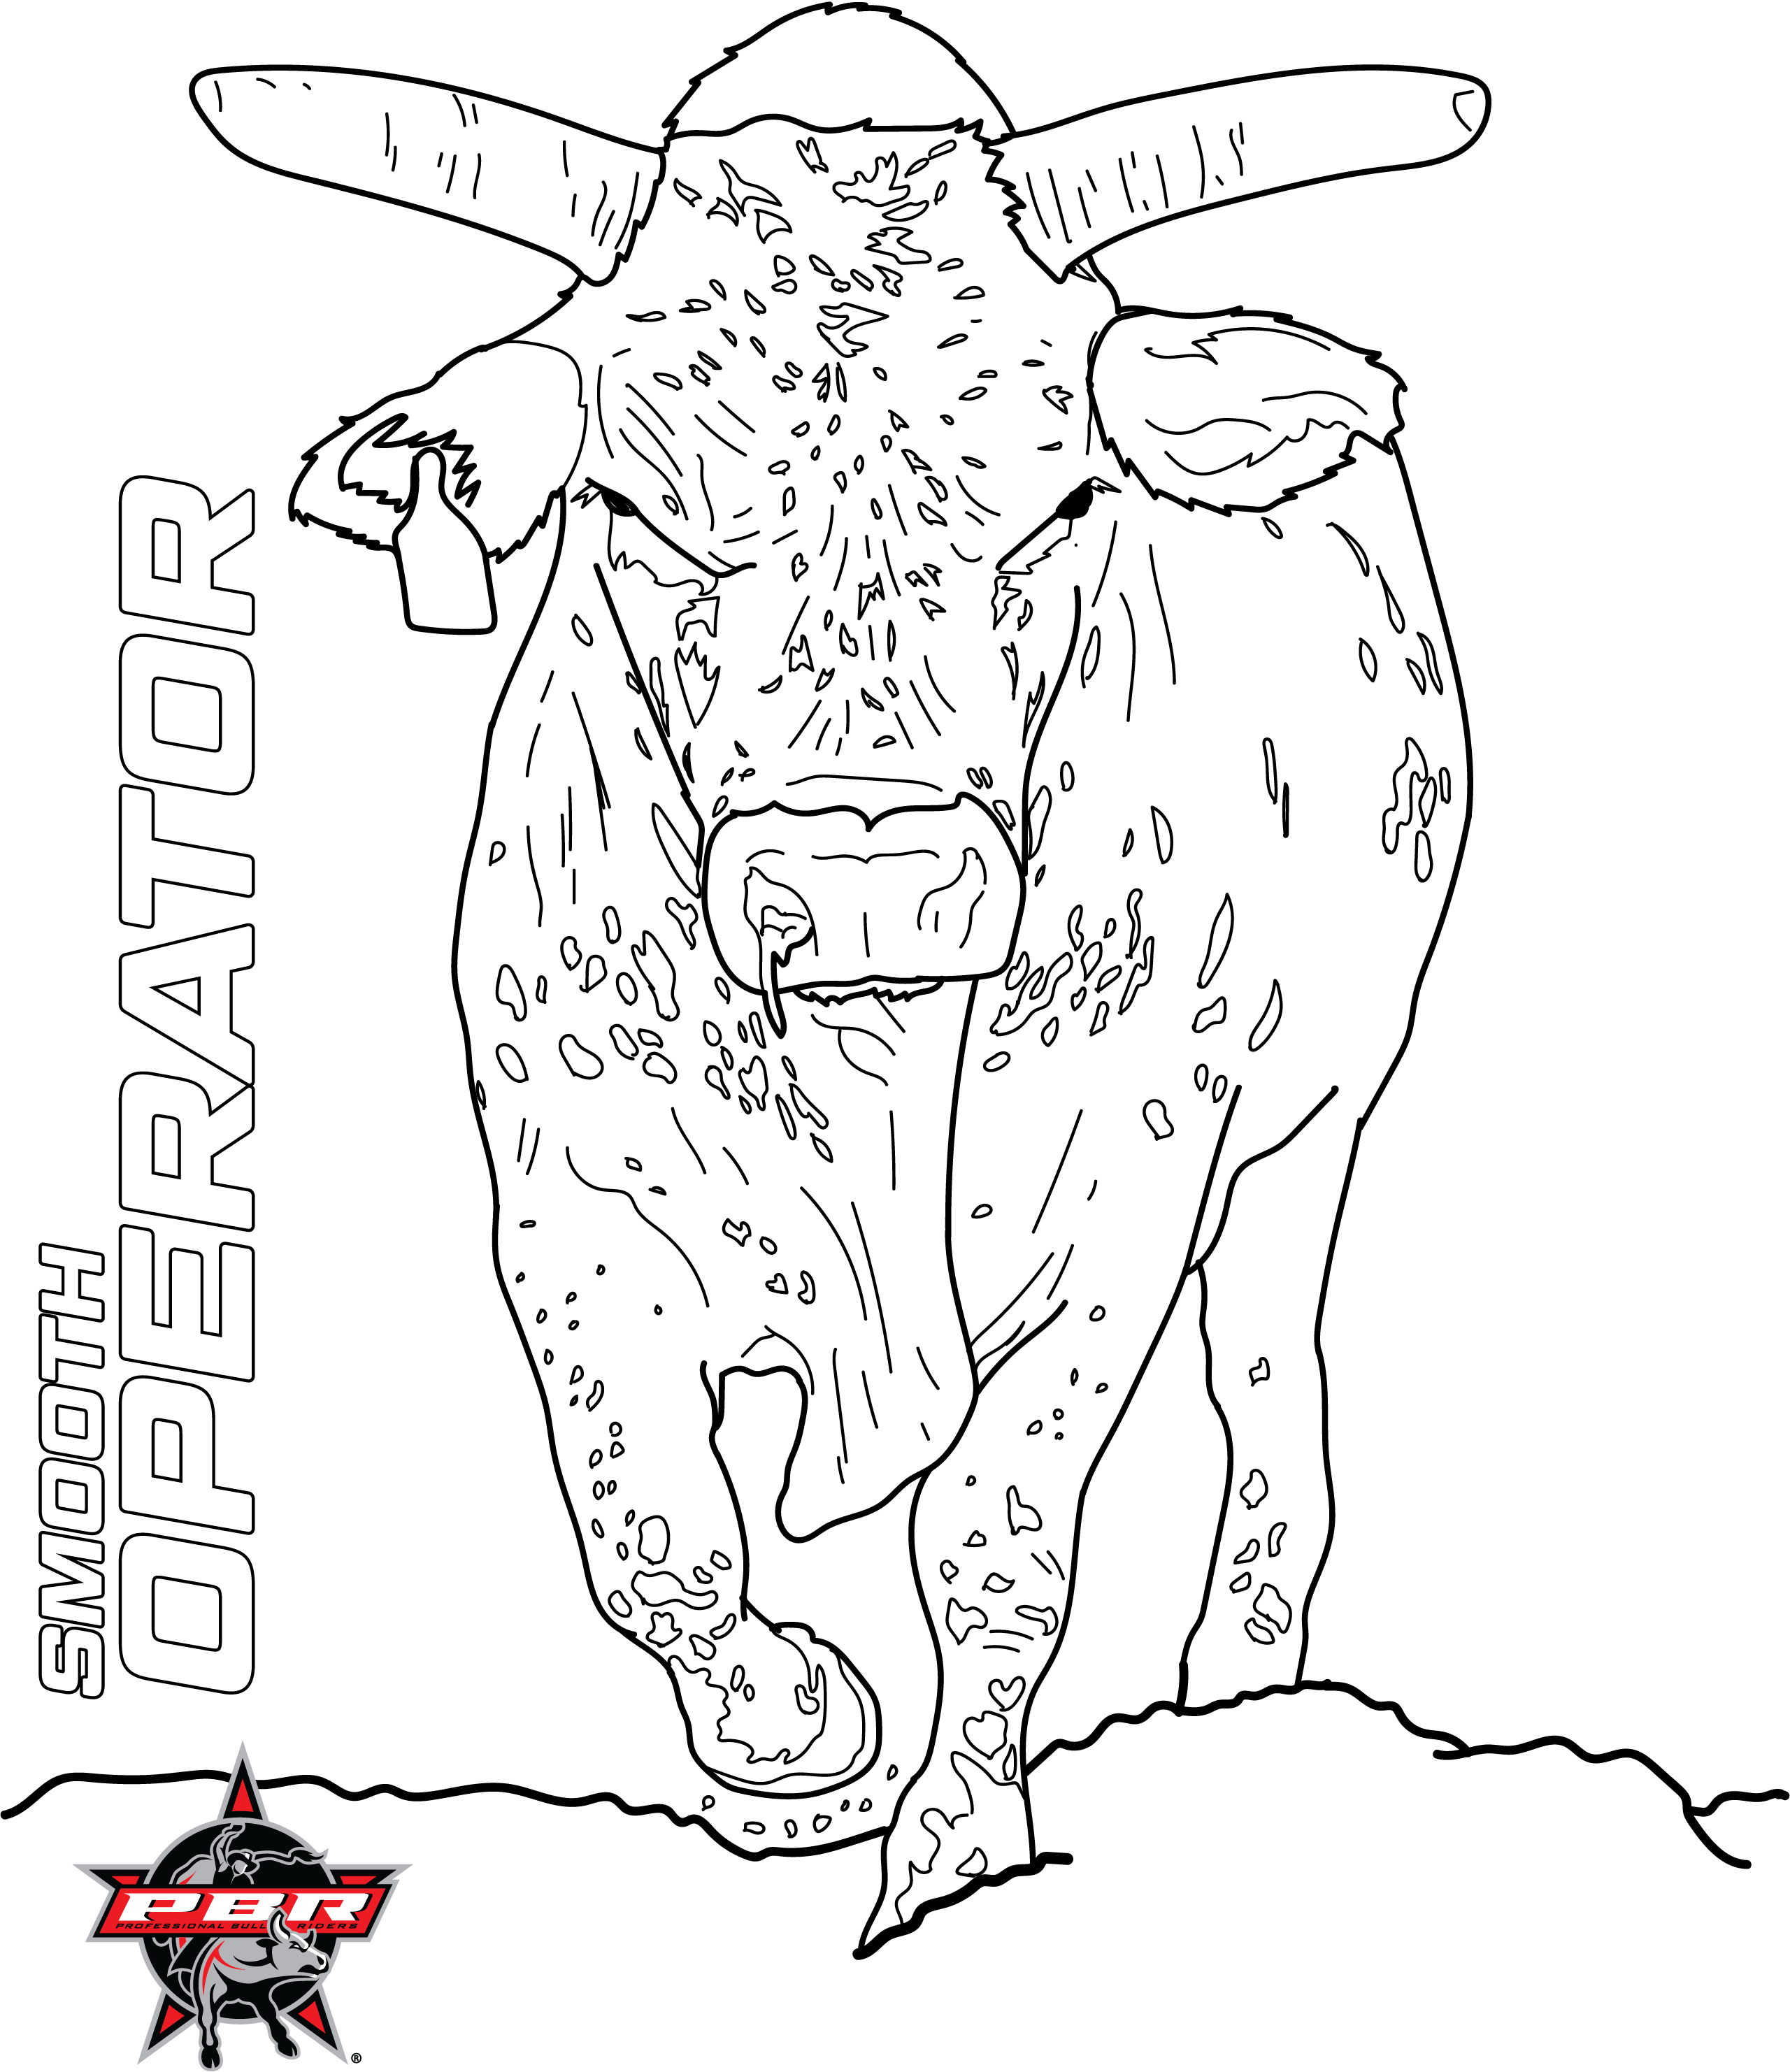 Rodeo Coloring Pages Capture Free Printable Horse Coloring Pages ... | 2964x2560